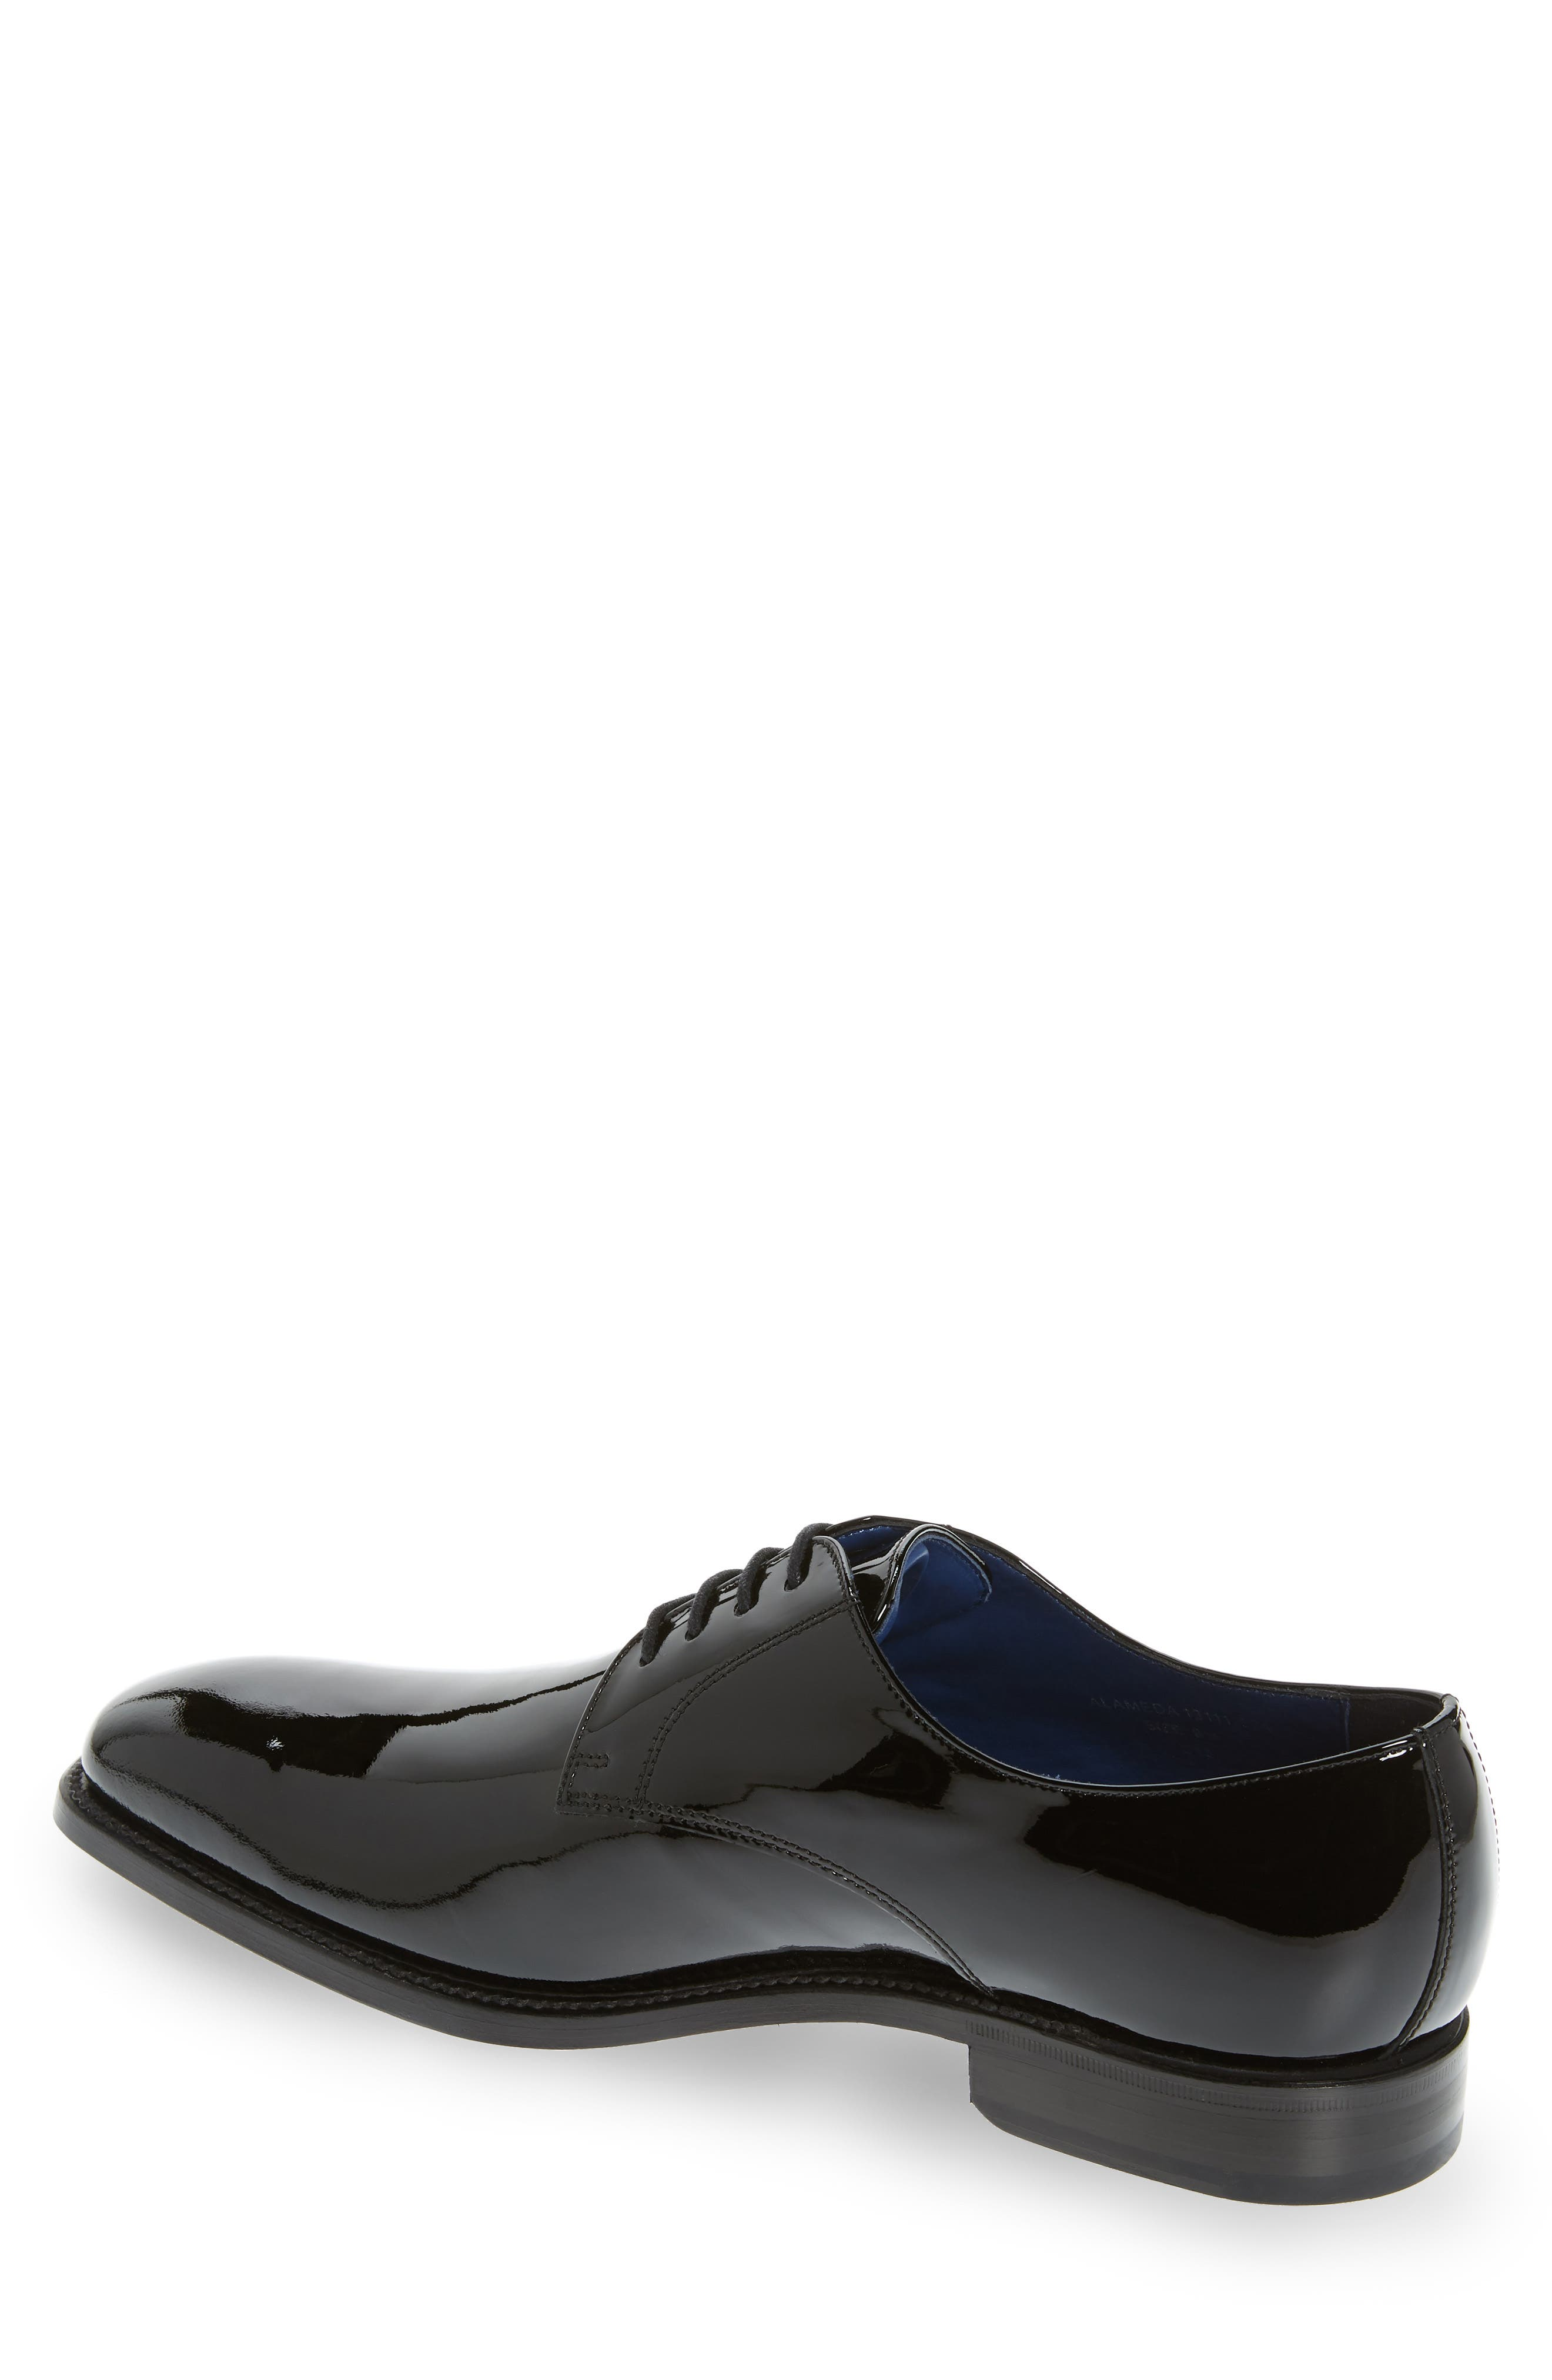 Alameda Plain Toe Derby,                             Alternate thumbnail 2, color,                             BLACK PATENT LEATHER